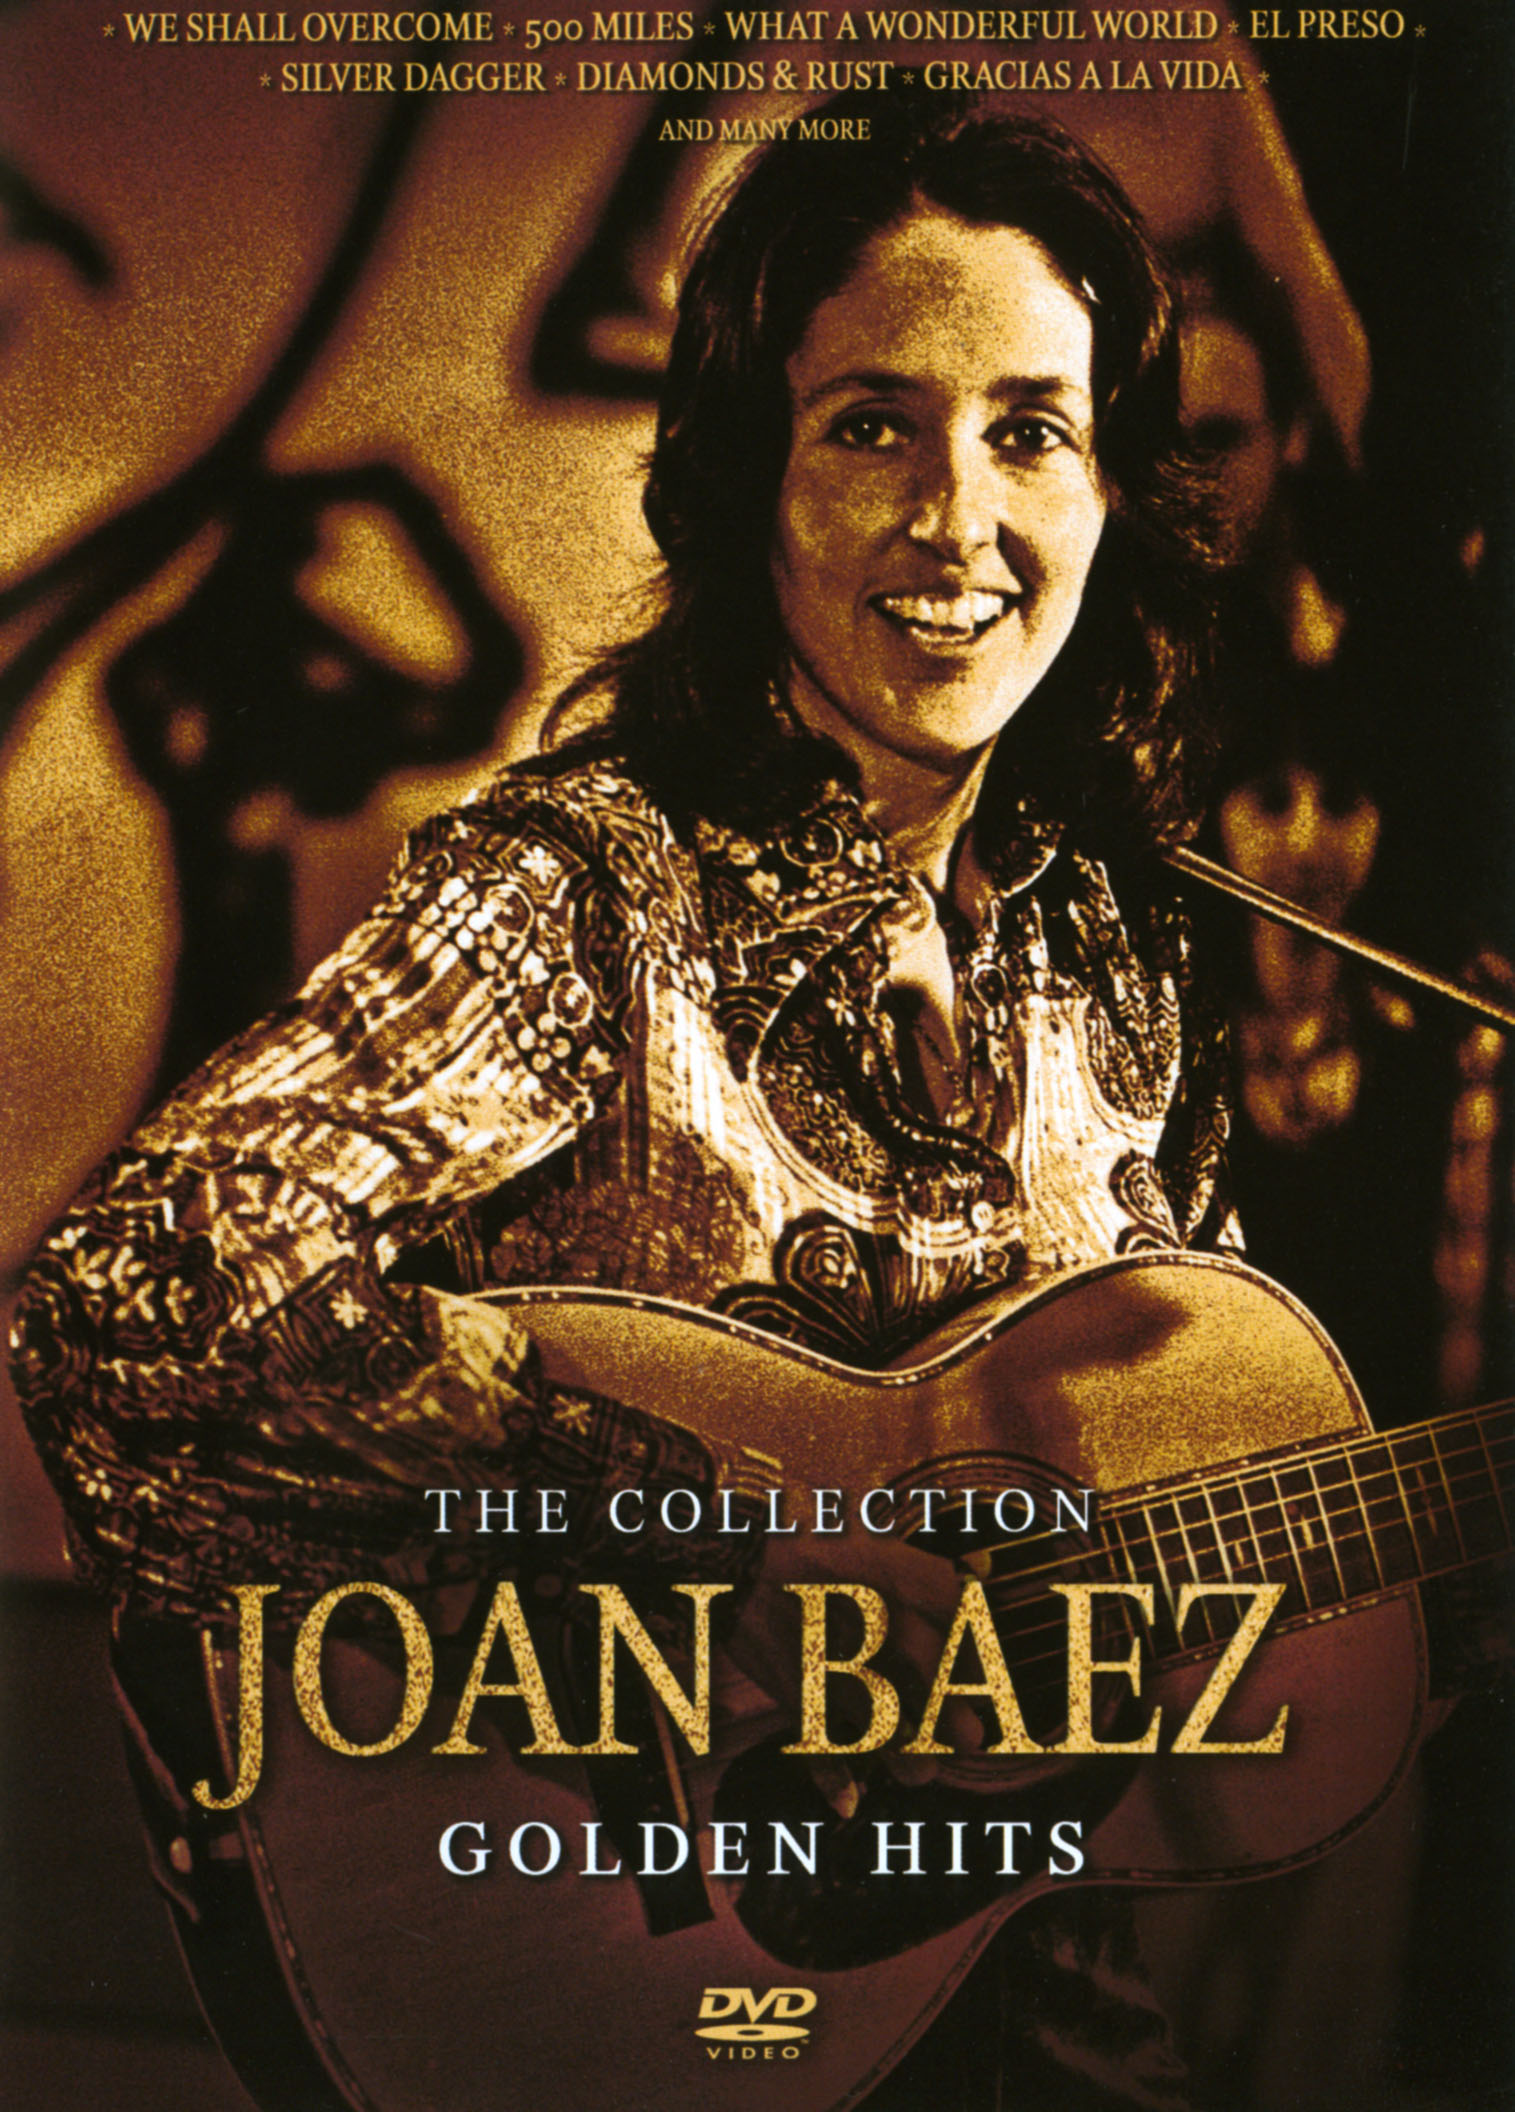 Joan Baez: Golden Hits - The Collection